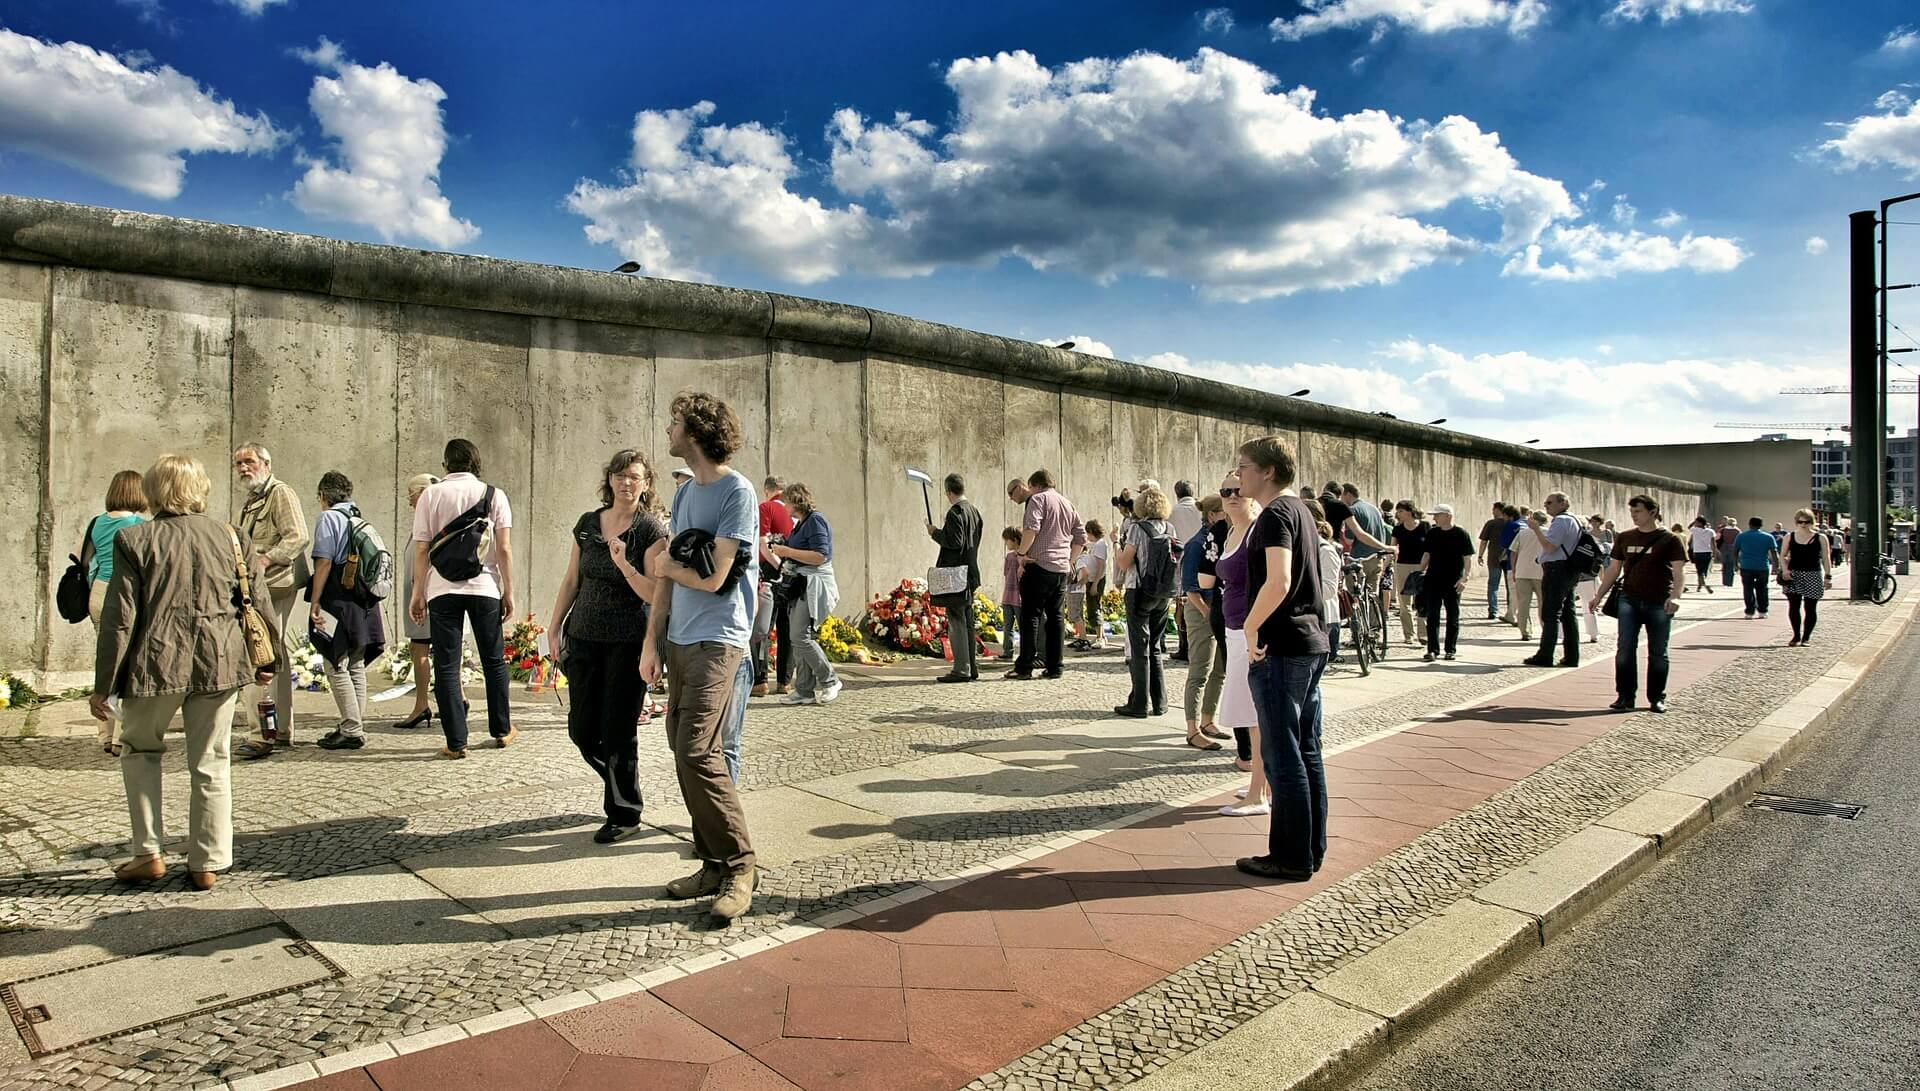 Berlin Wall With Lots Of People